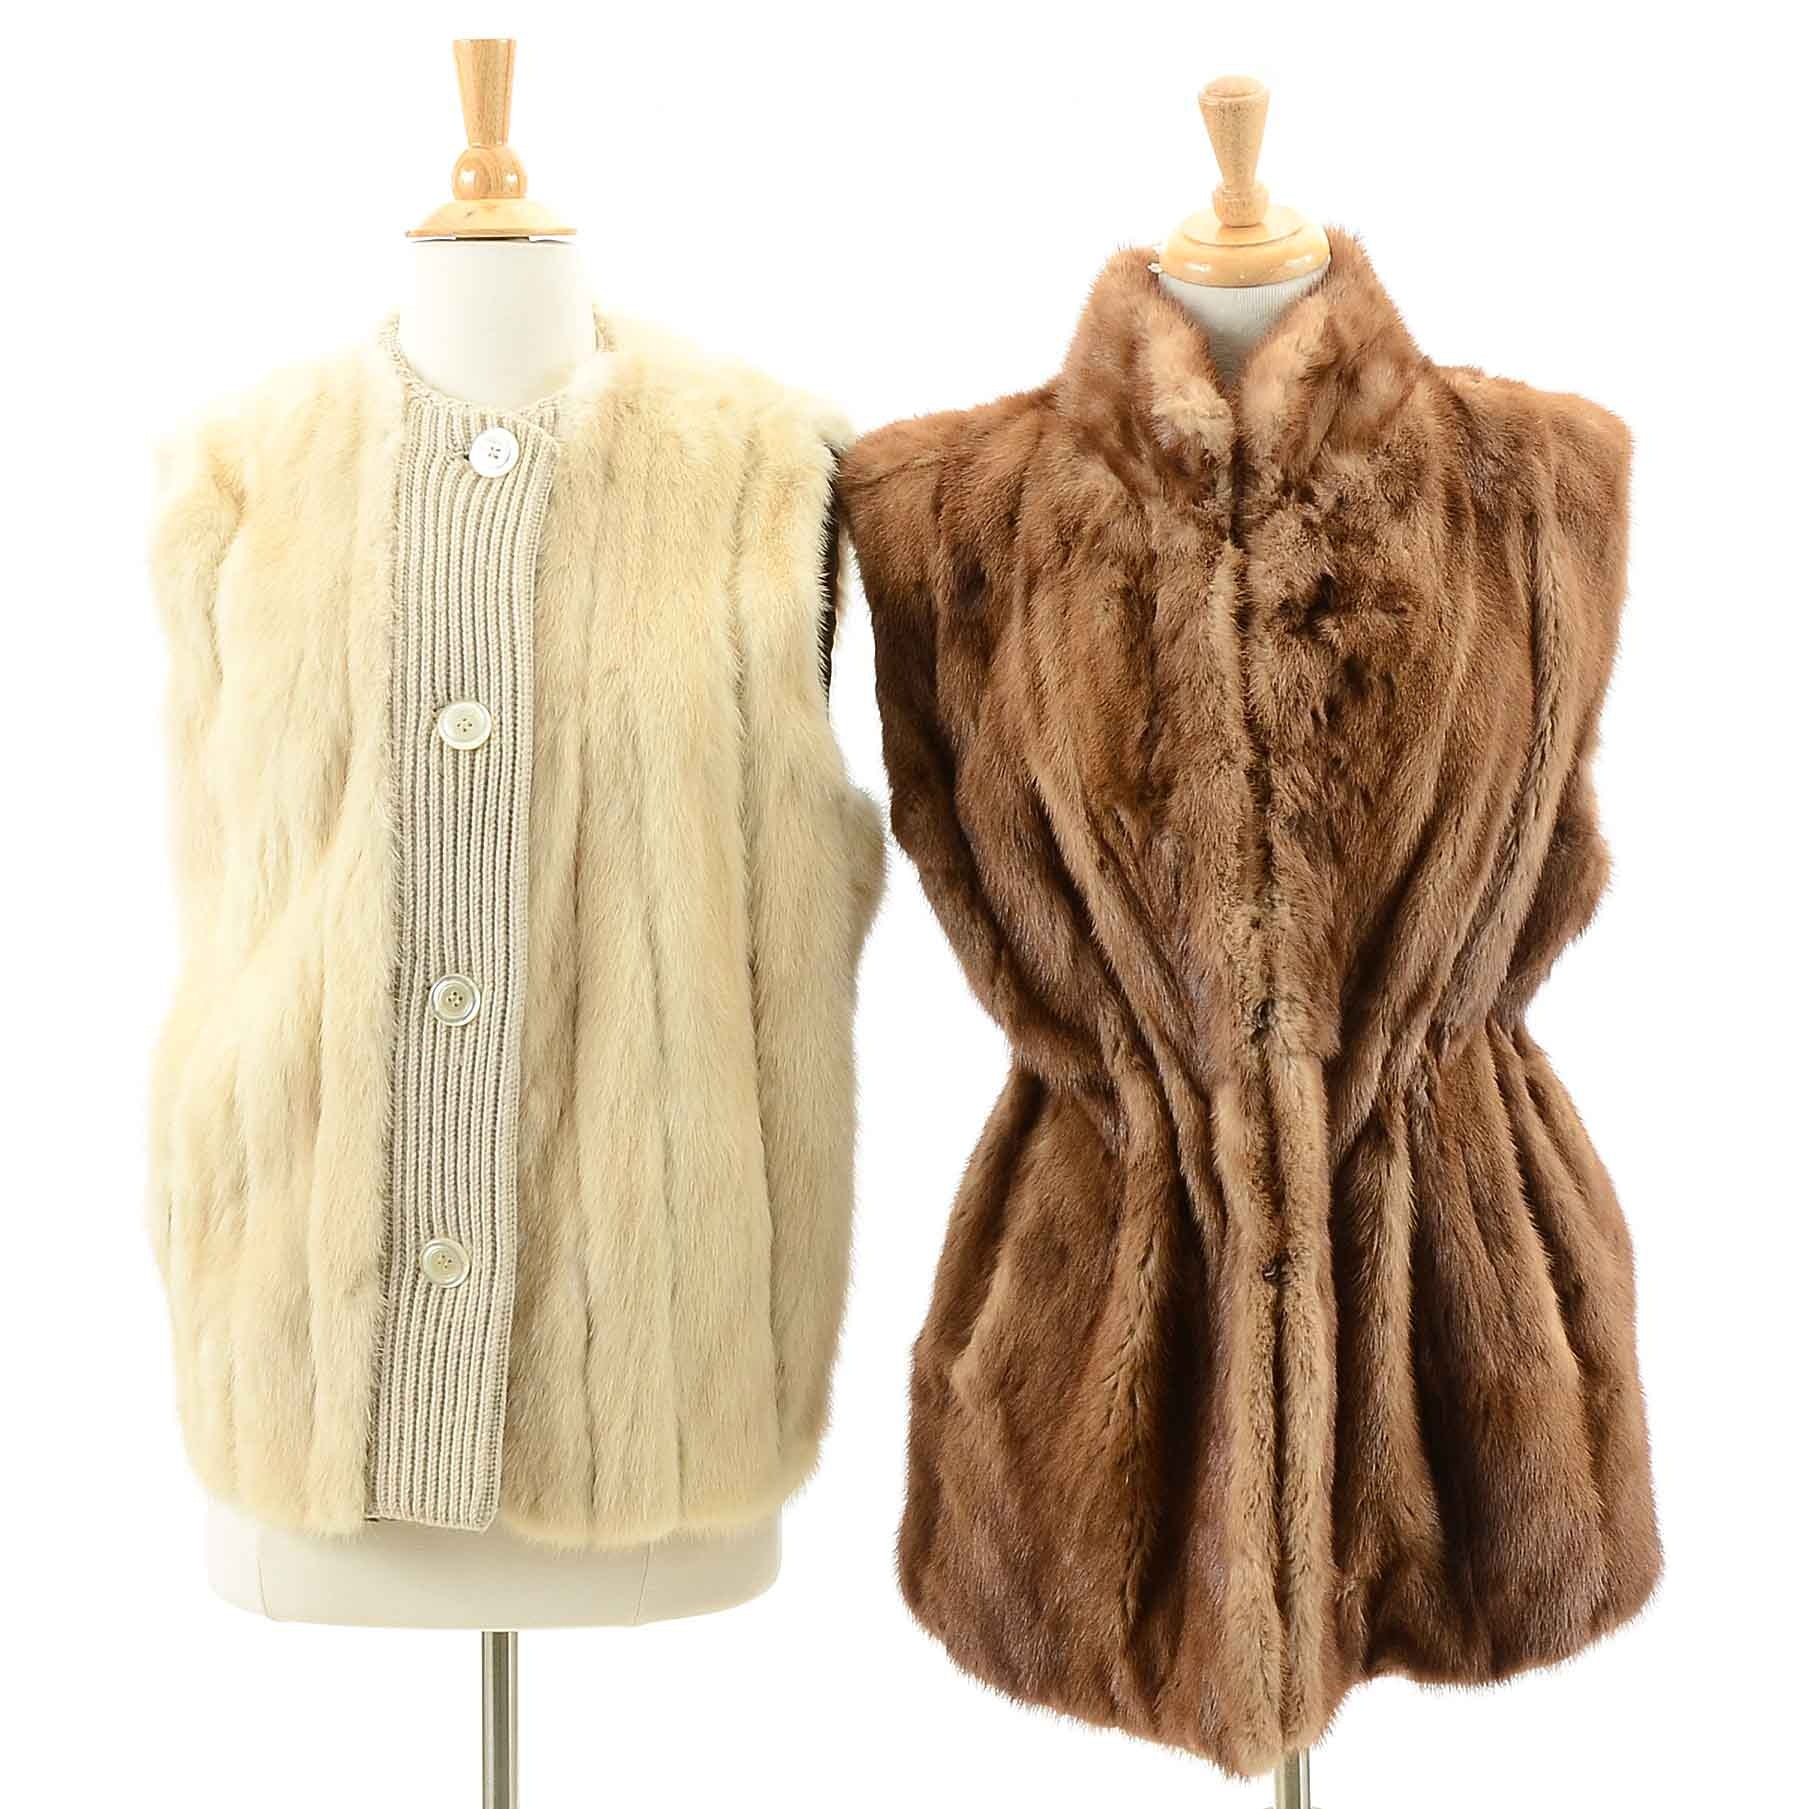 Vintage Brown and Blonde Mink Fur Vests